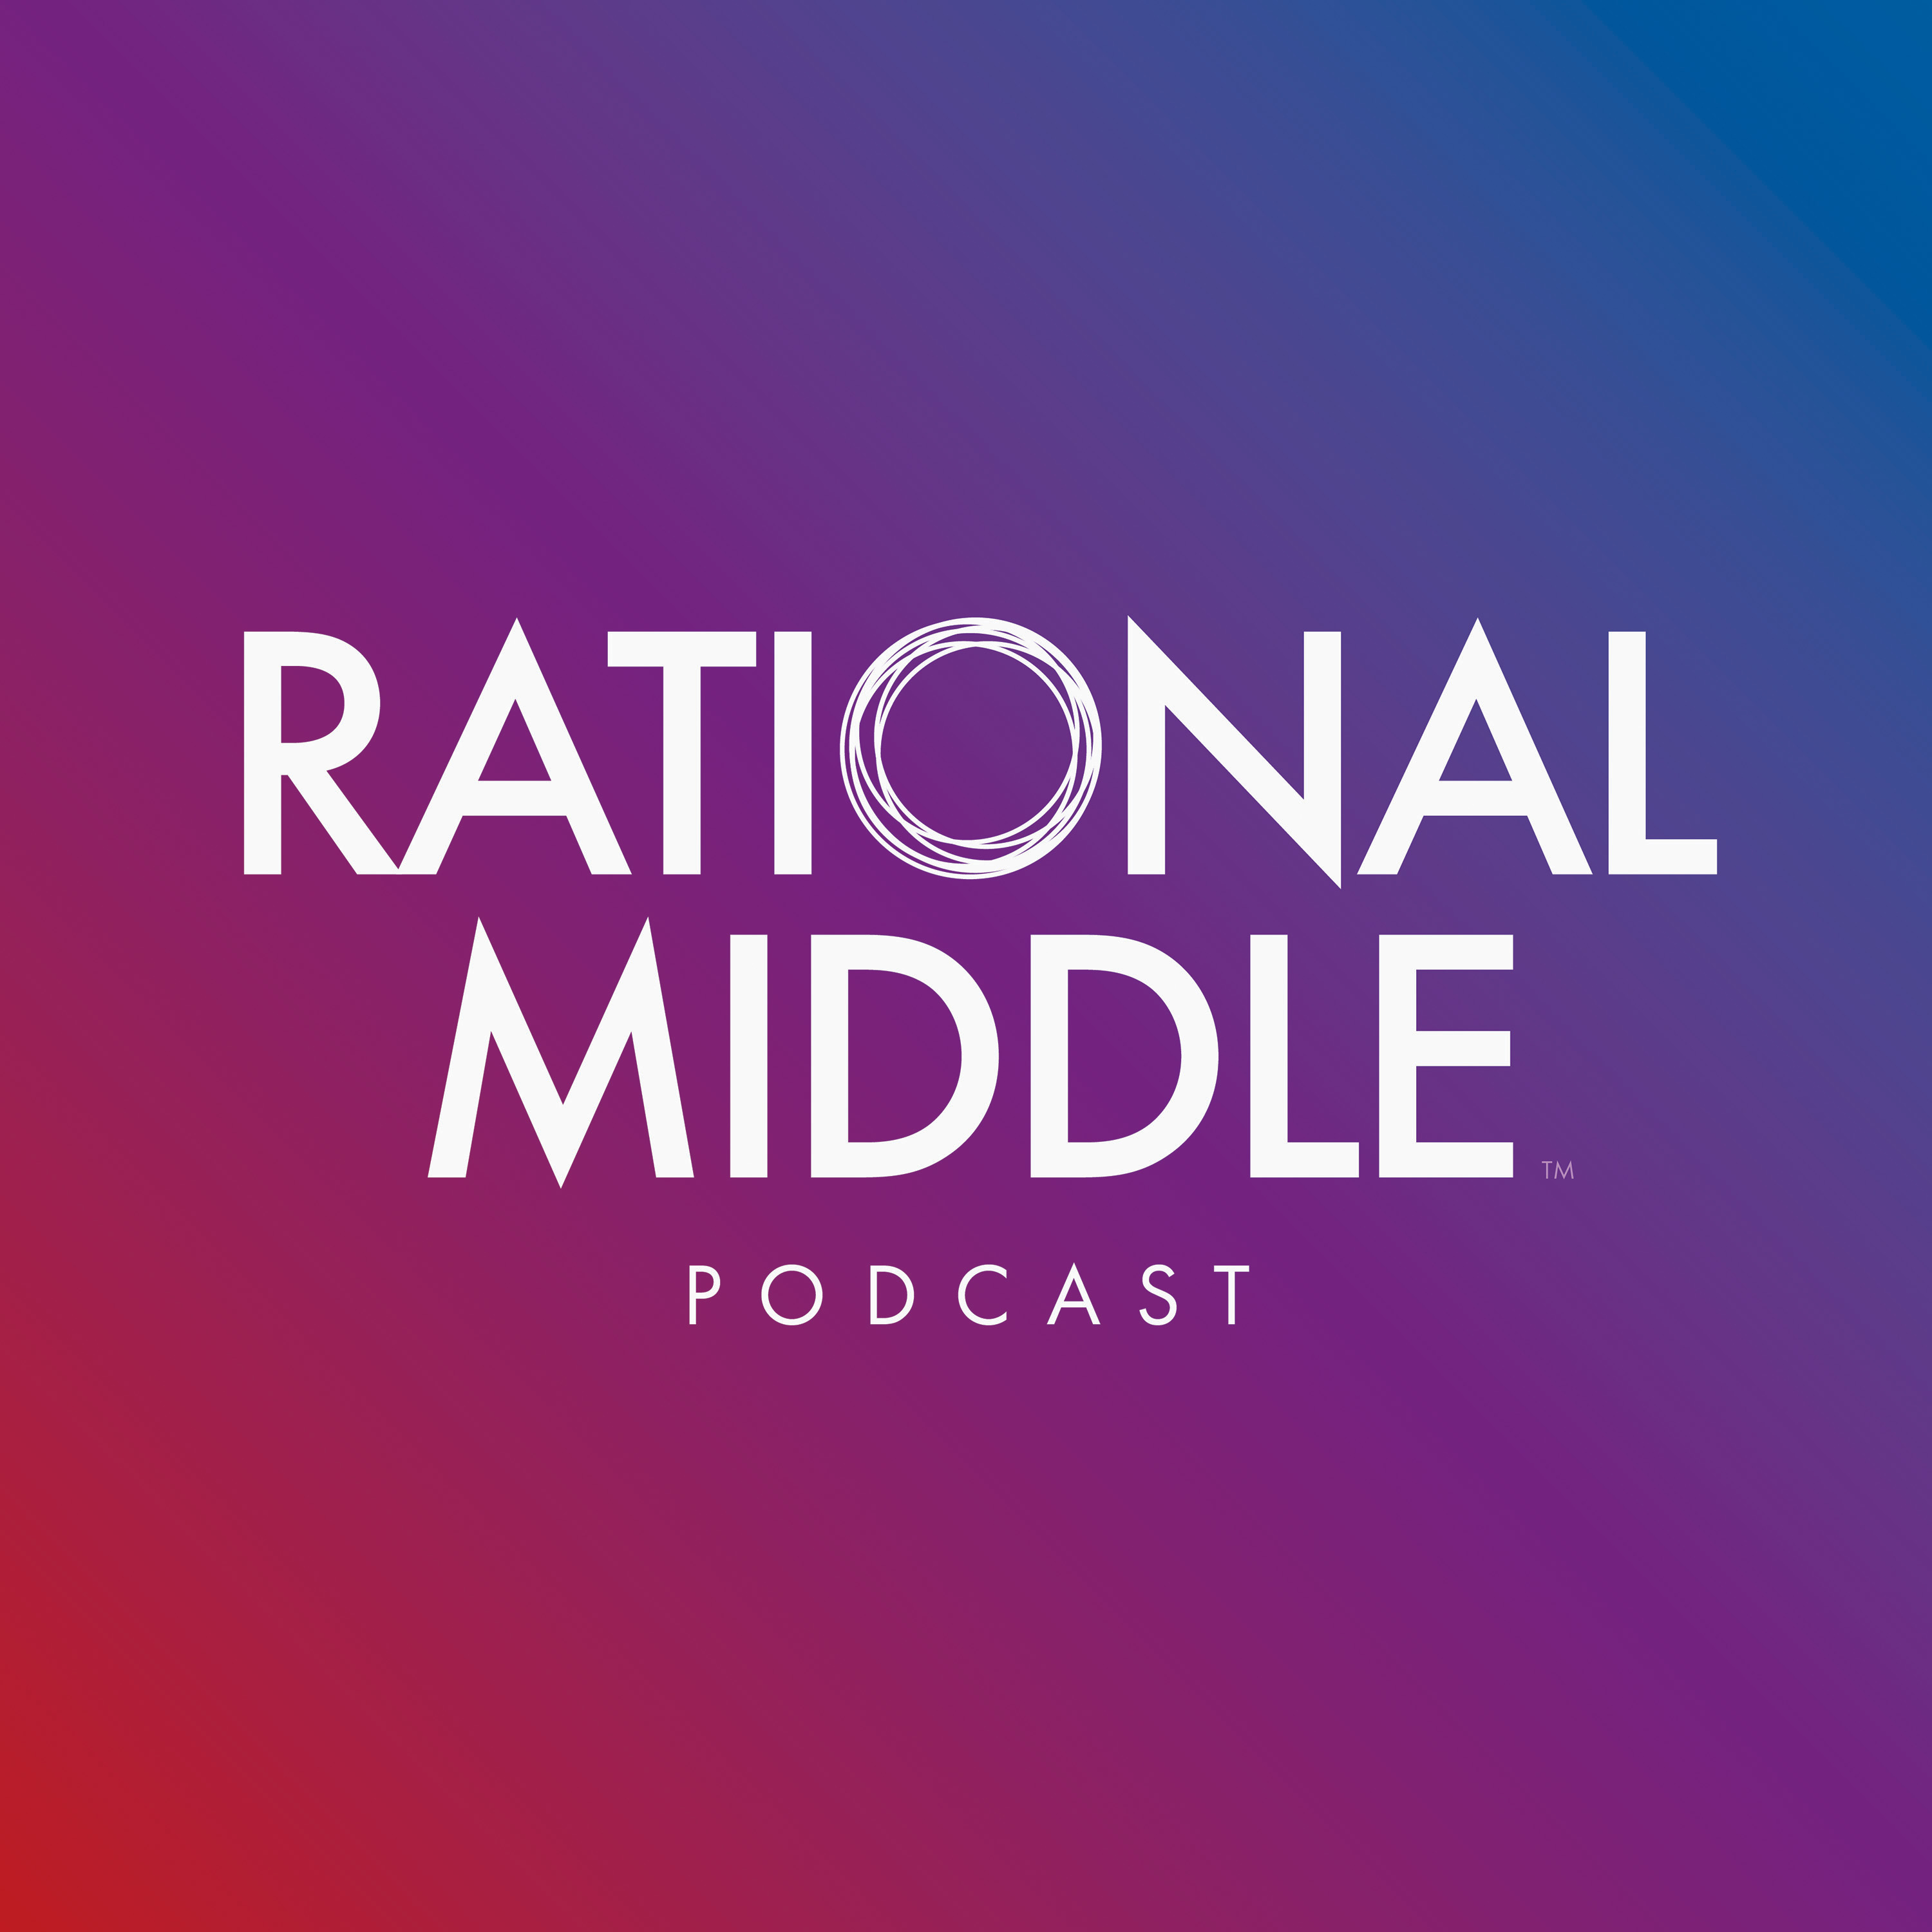 Rational Middle show art